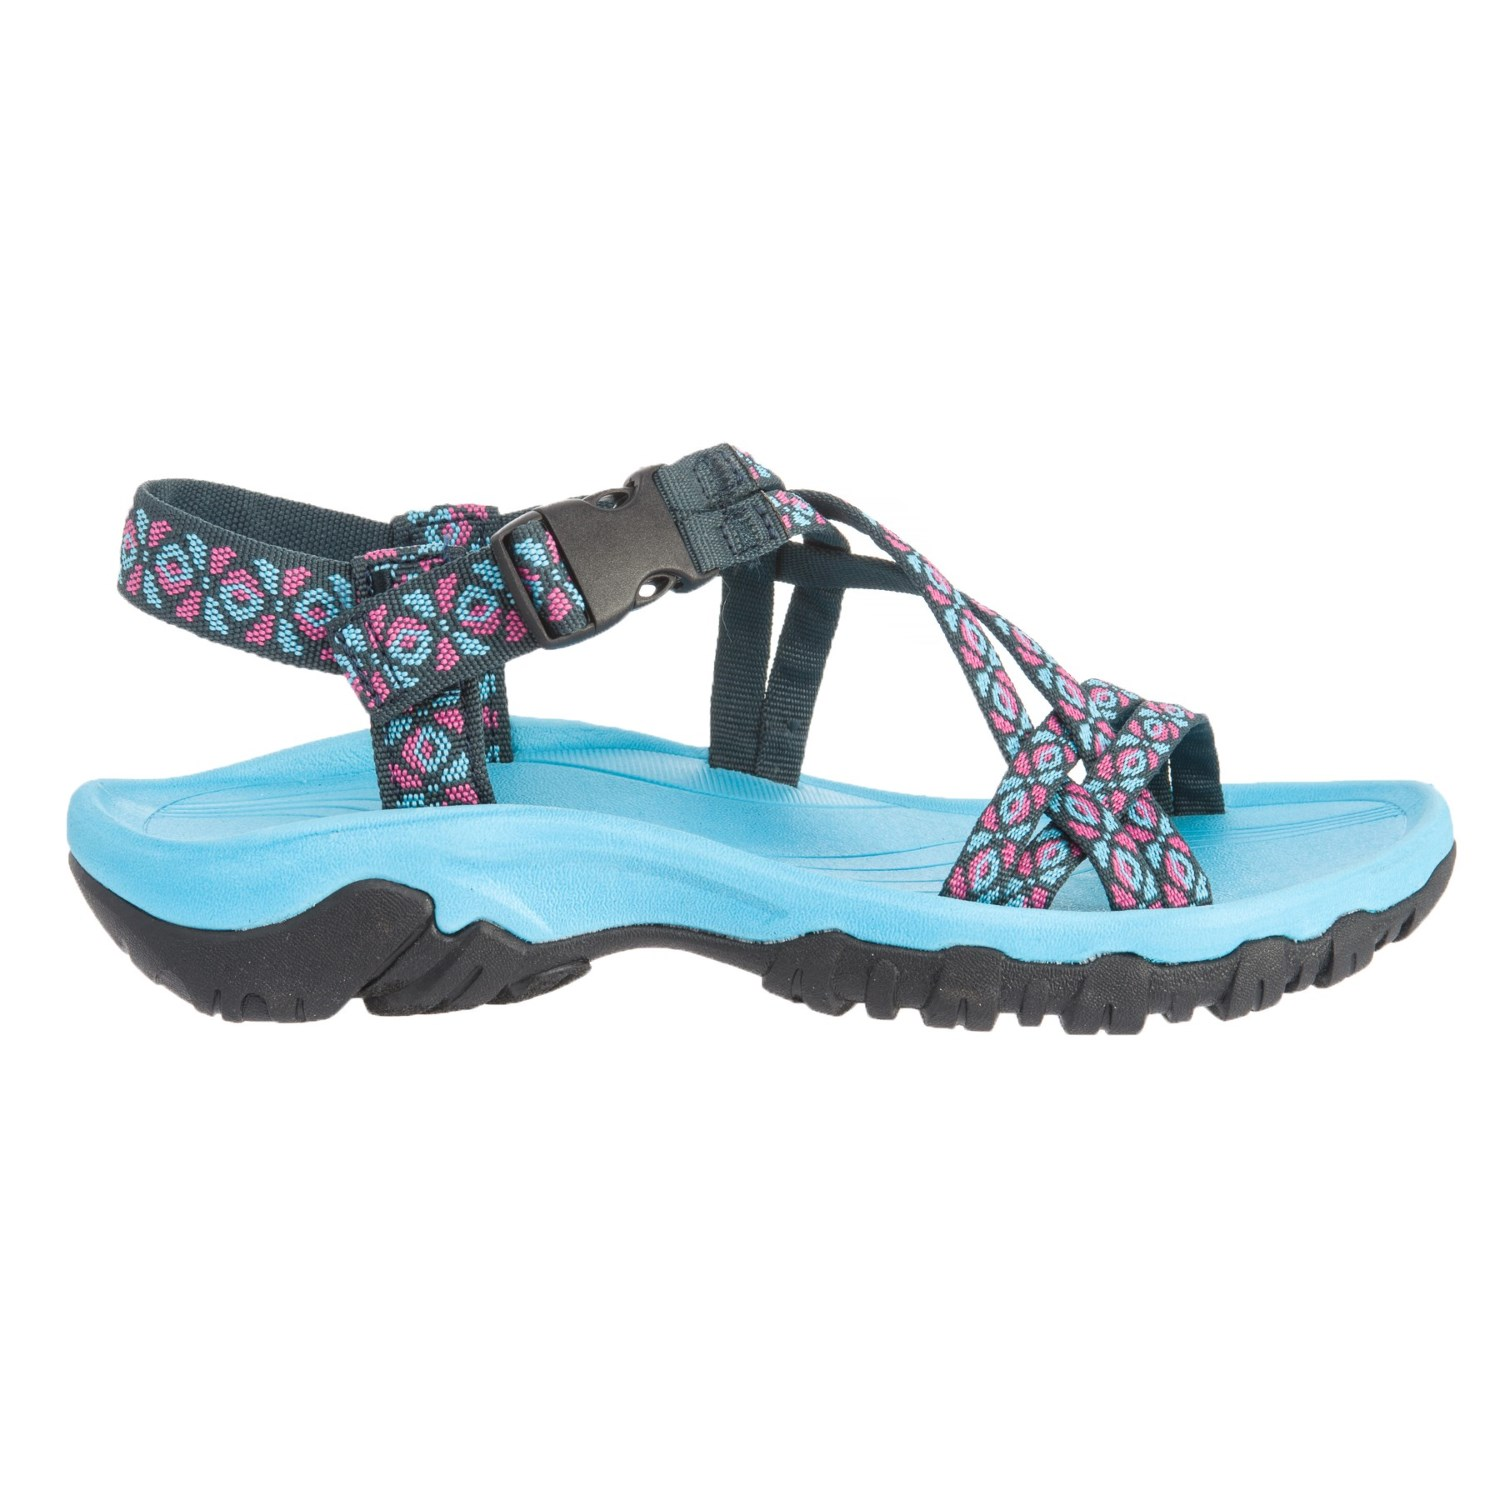 855321aedb4 Aspen Double-Strap Sport Sandals (For Women) - Save 37%